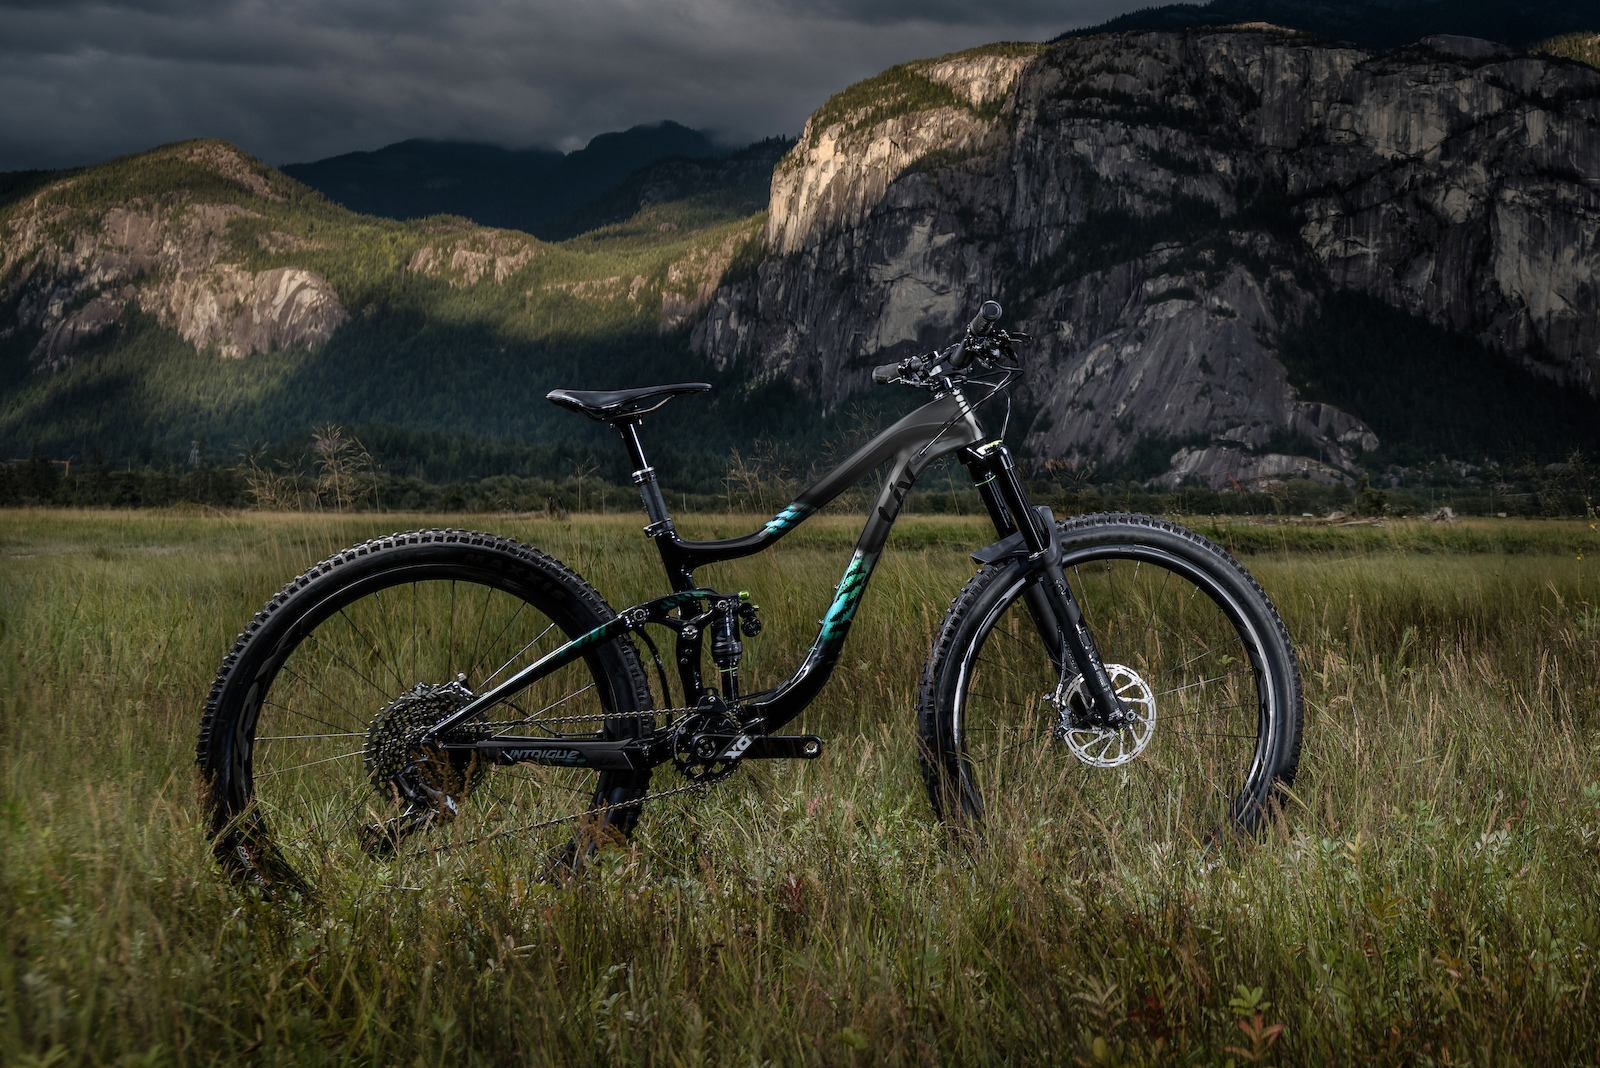 d07df42d8c5 First Look: 2019 Liv Intrigue Advanced - Pinkbike